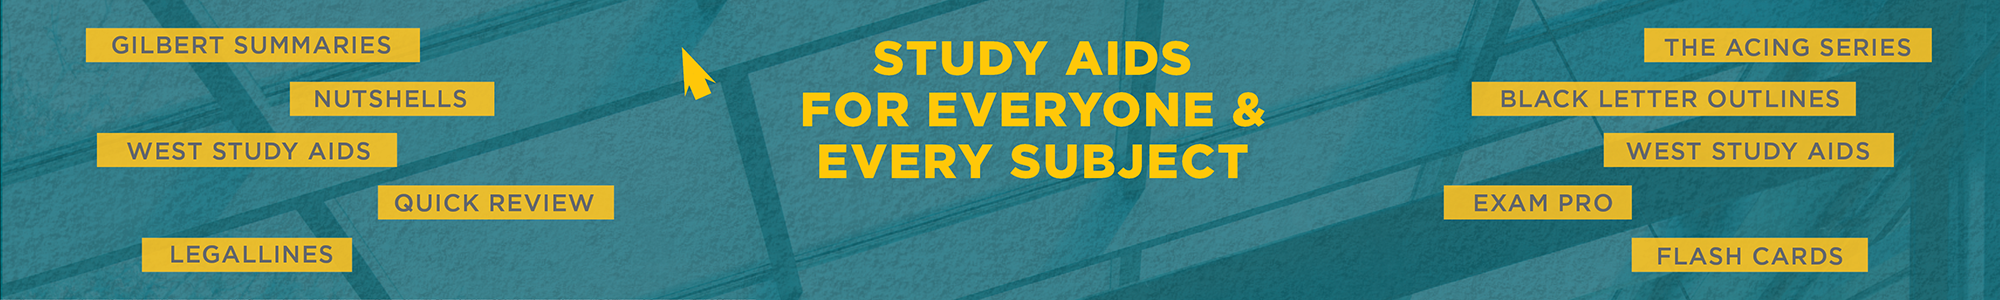 study aids on every subject and for everyone